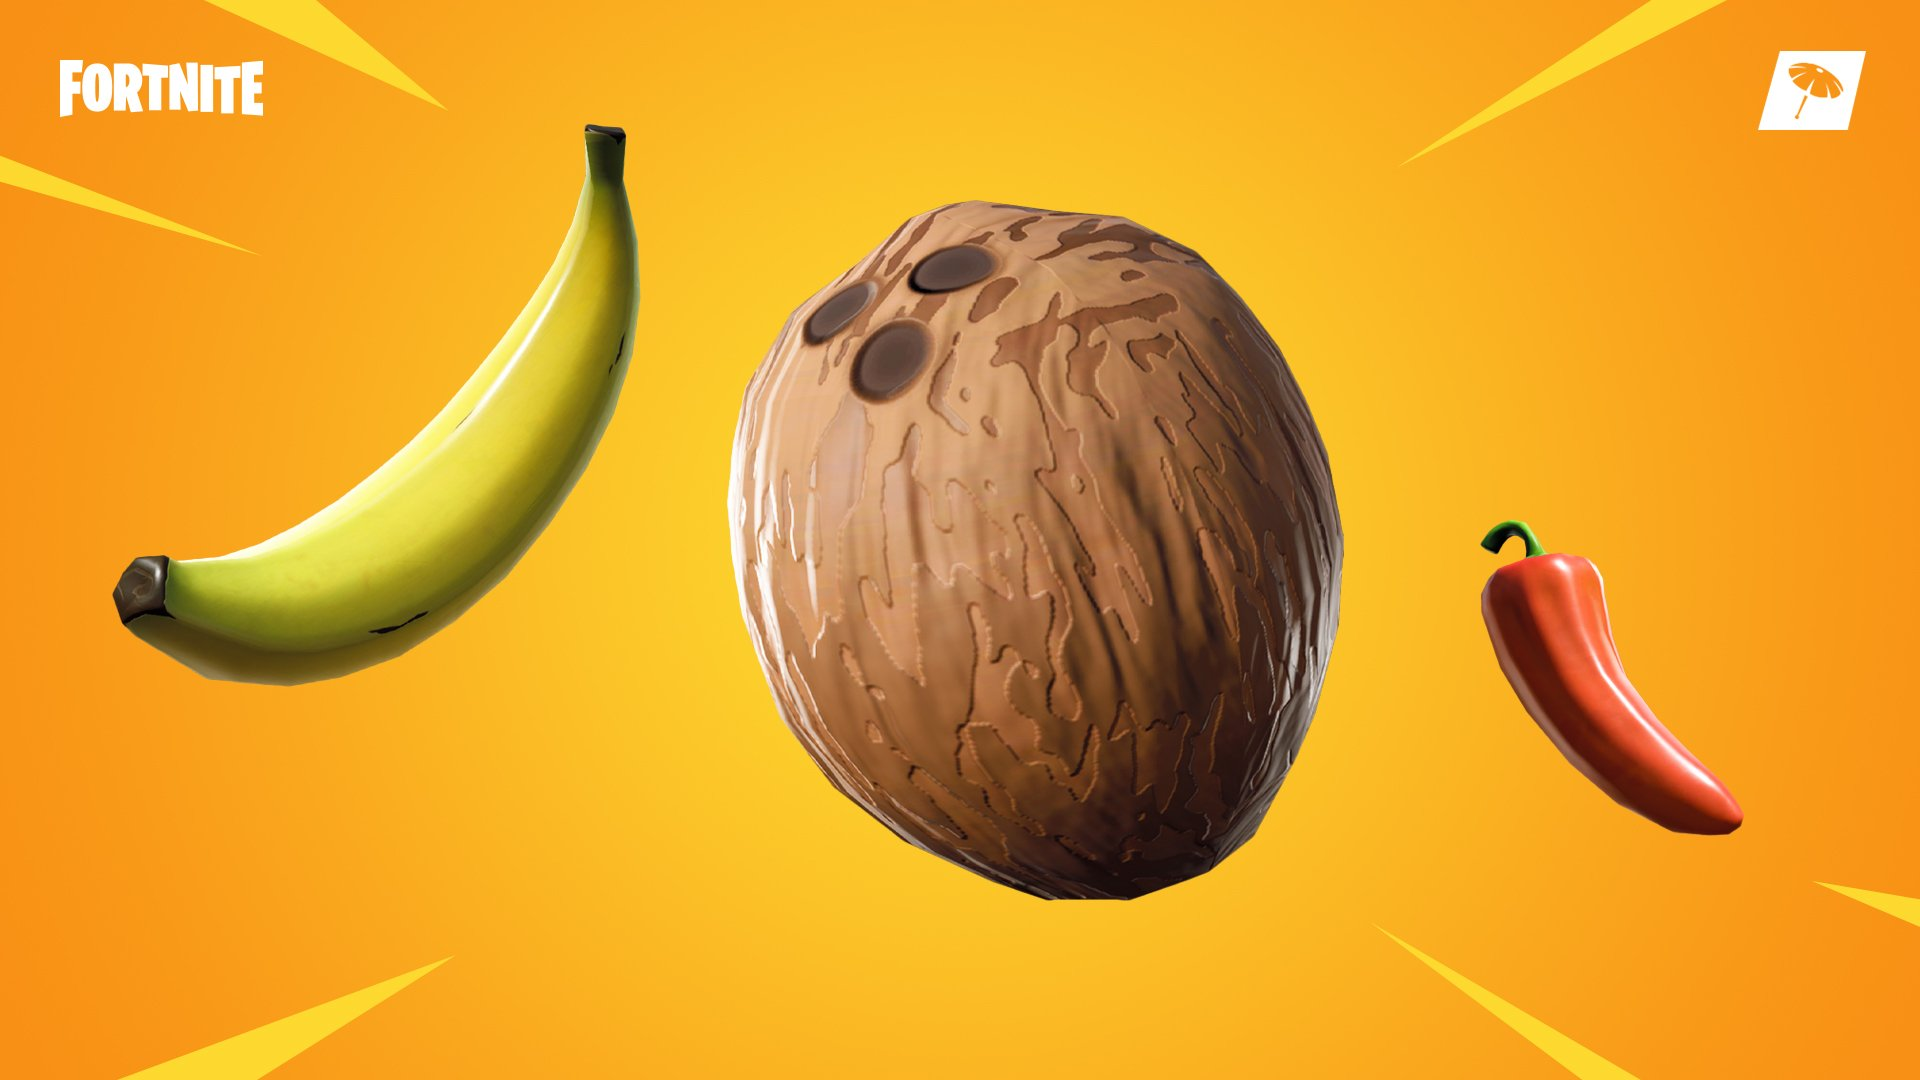 Get more variety in your Fortnite diet with bananas, coconuts, and chilis!